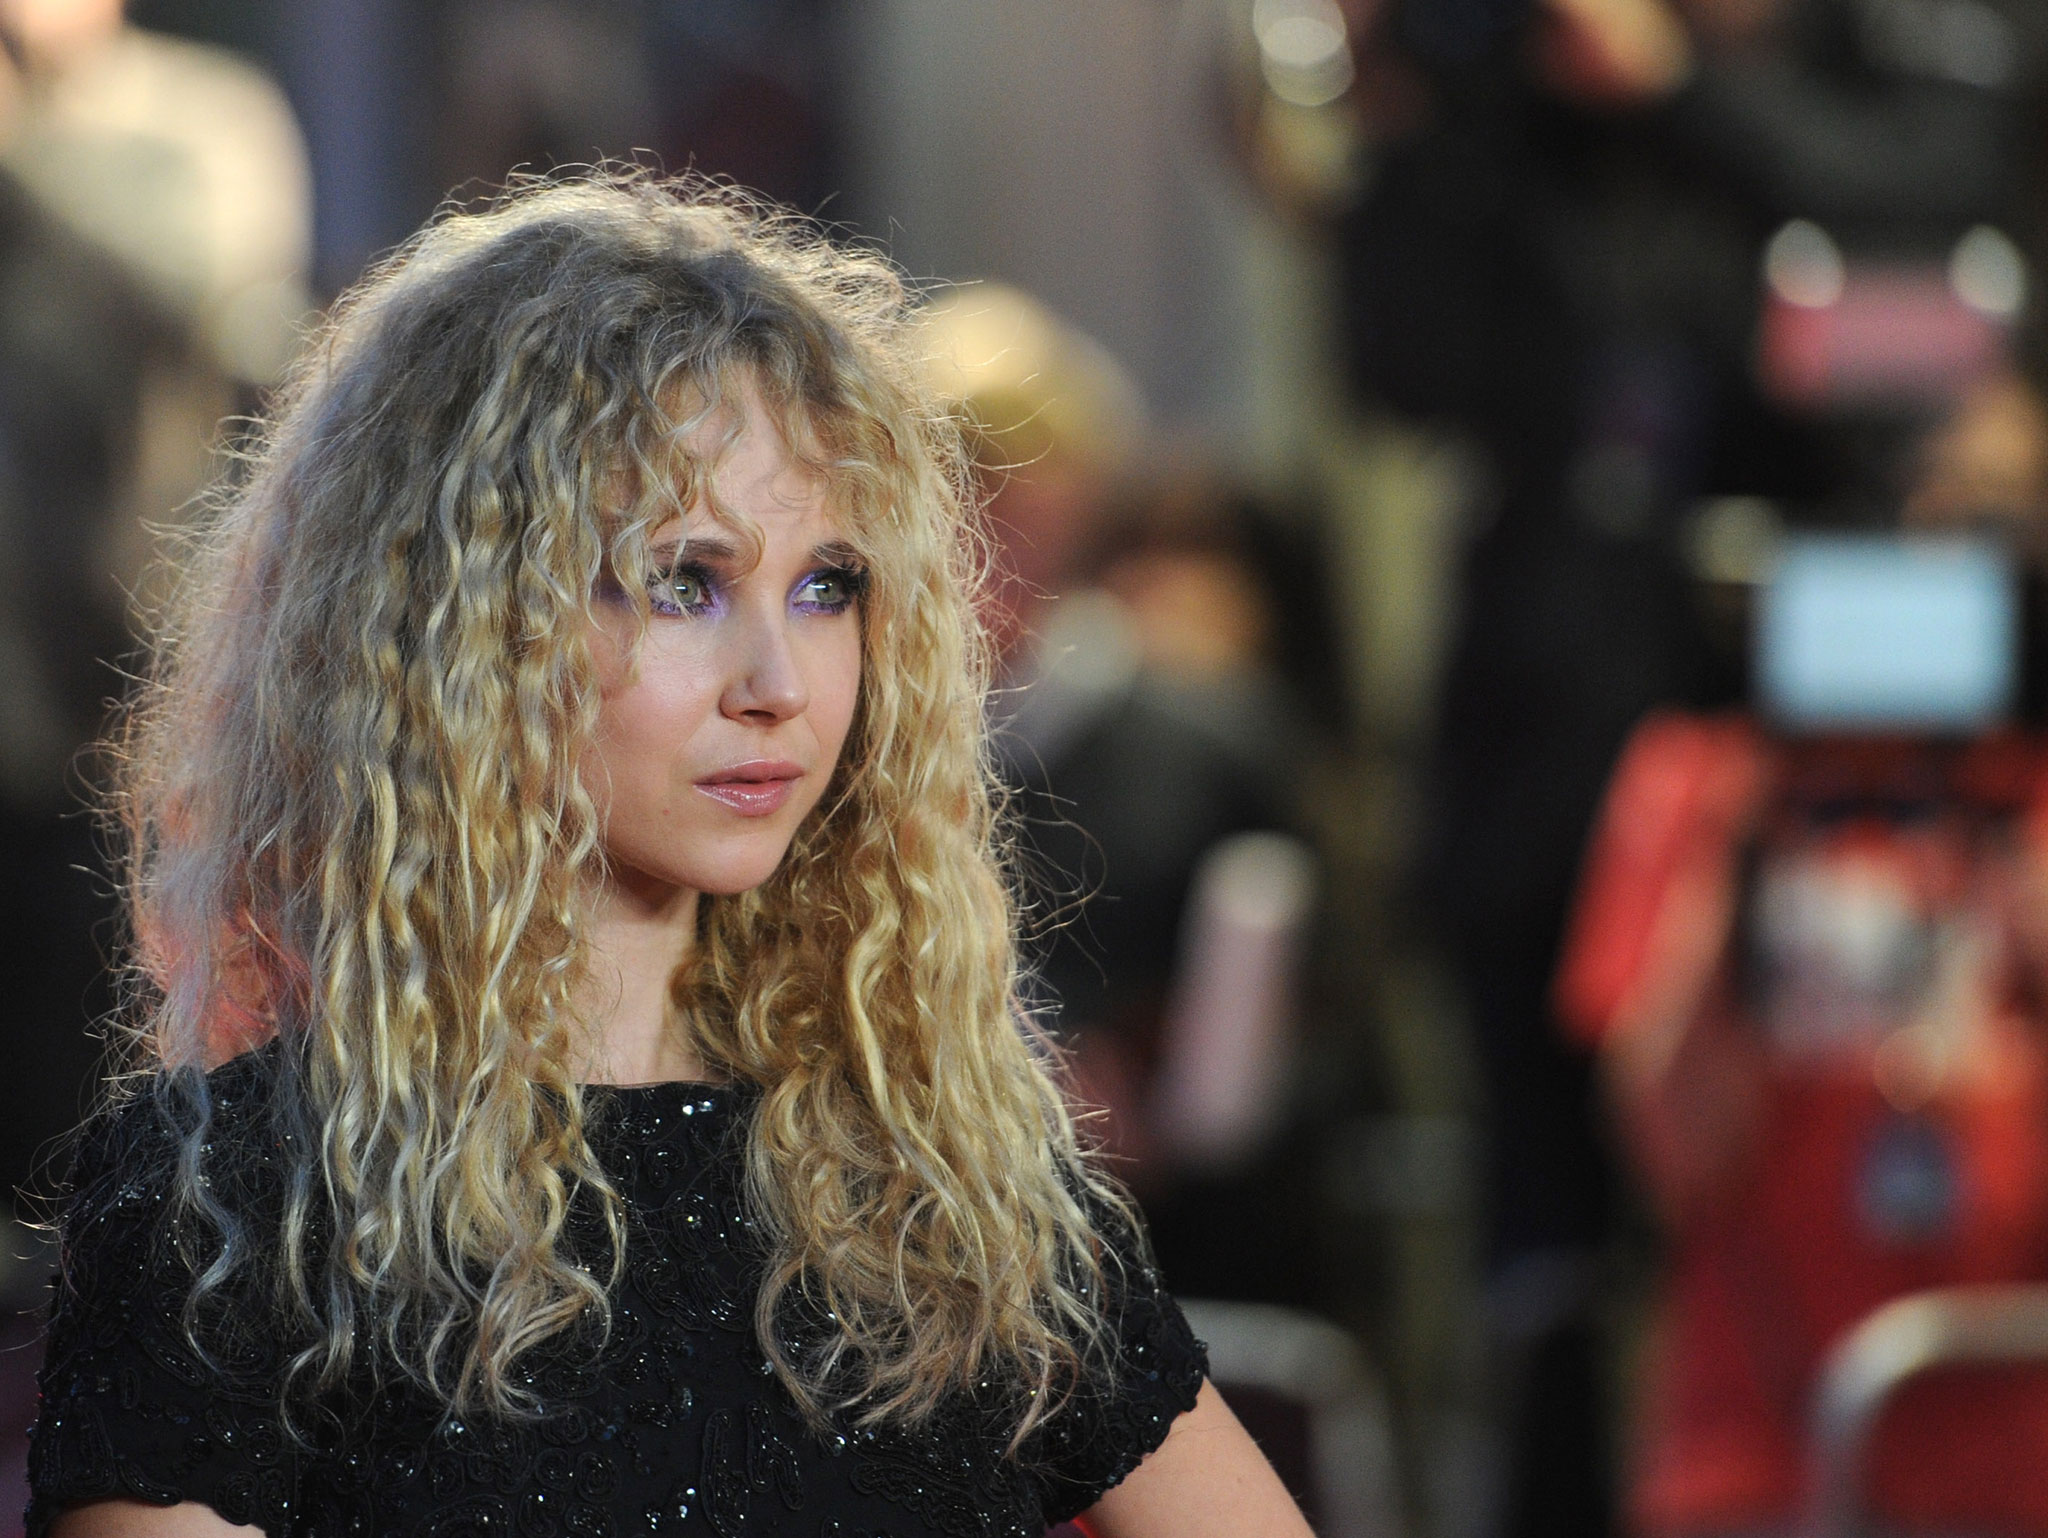 juno temple wallpaper photos 58830